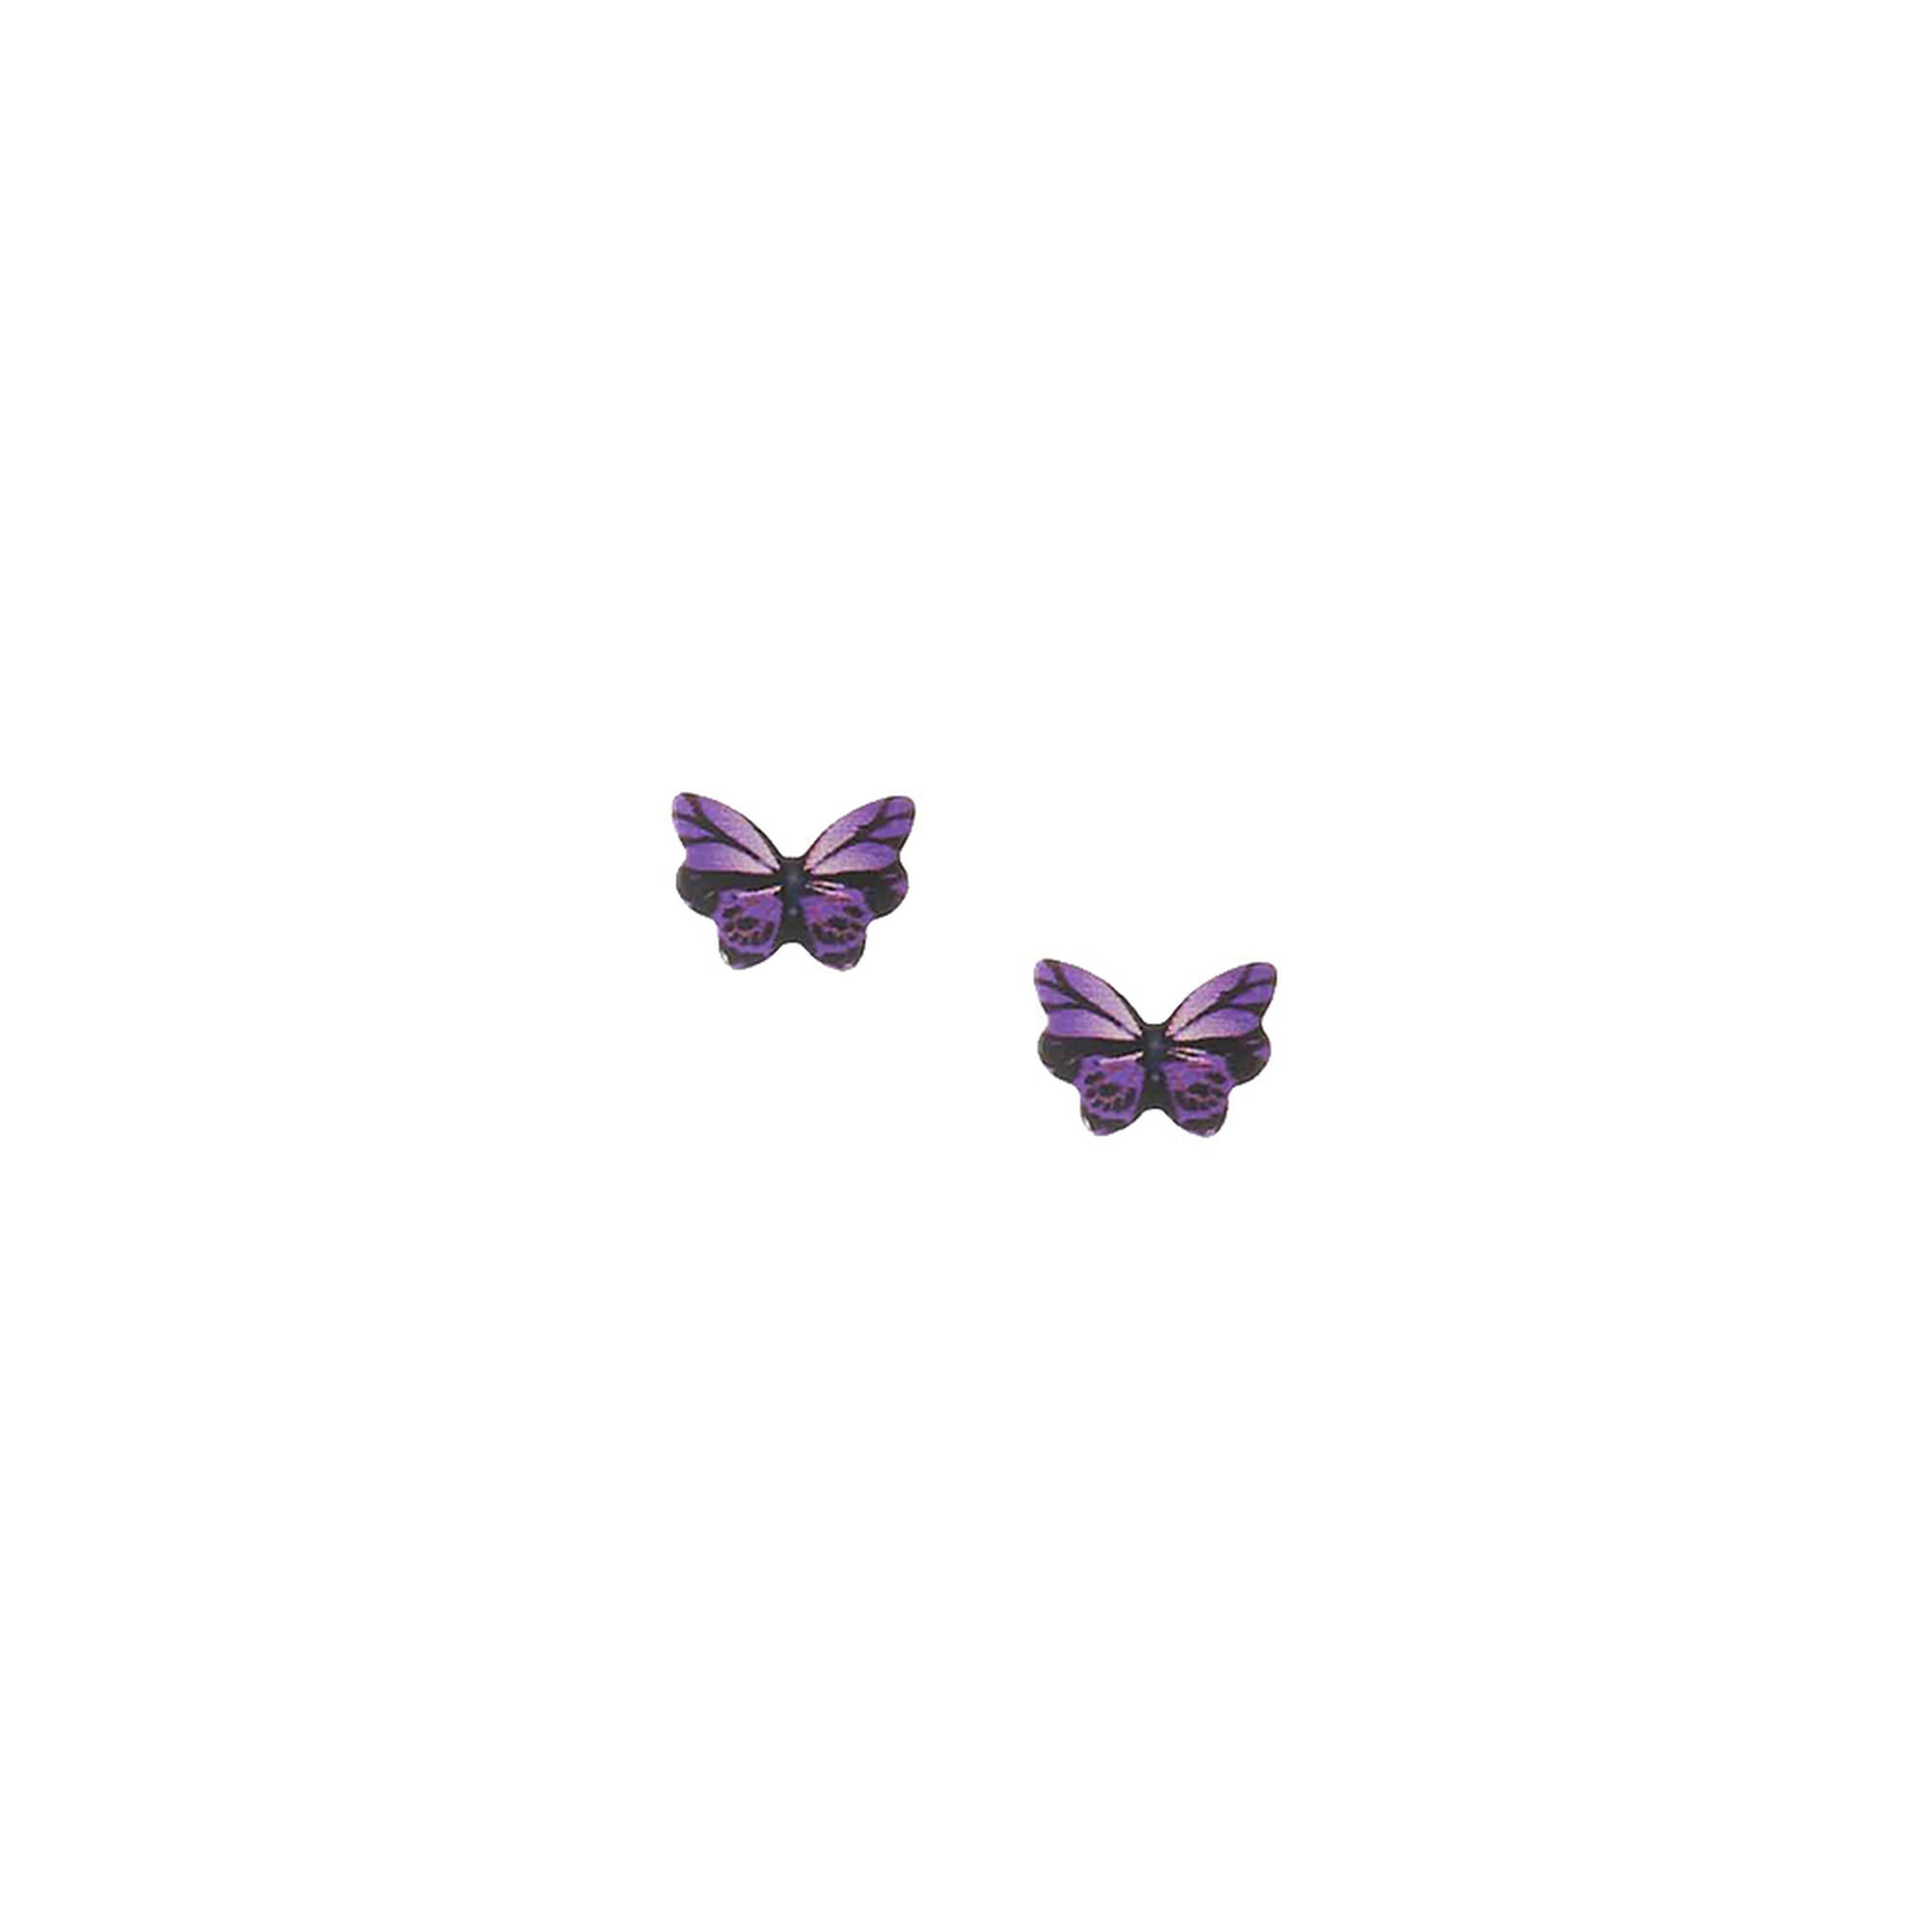 piercing rook stud butterfly with